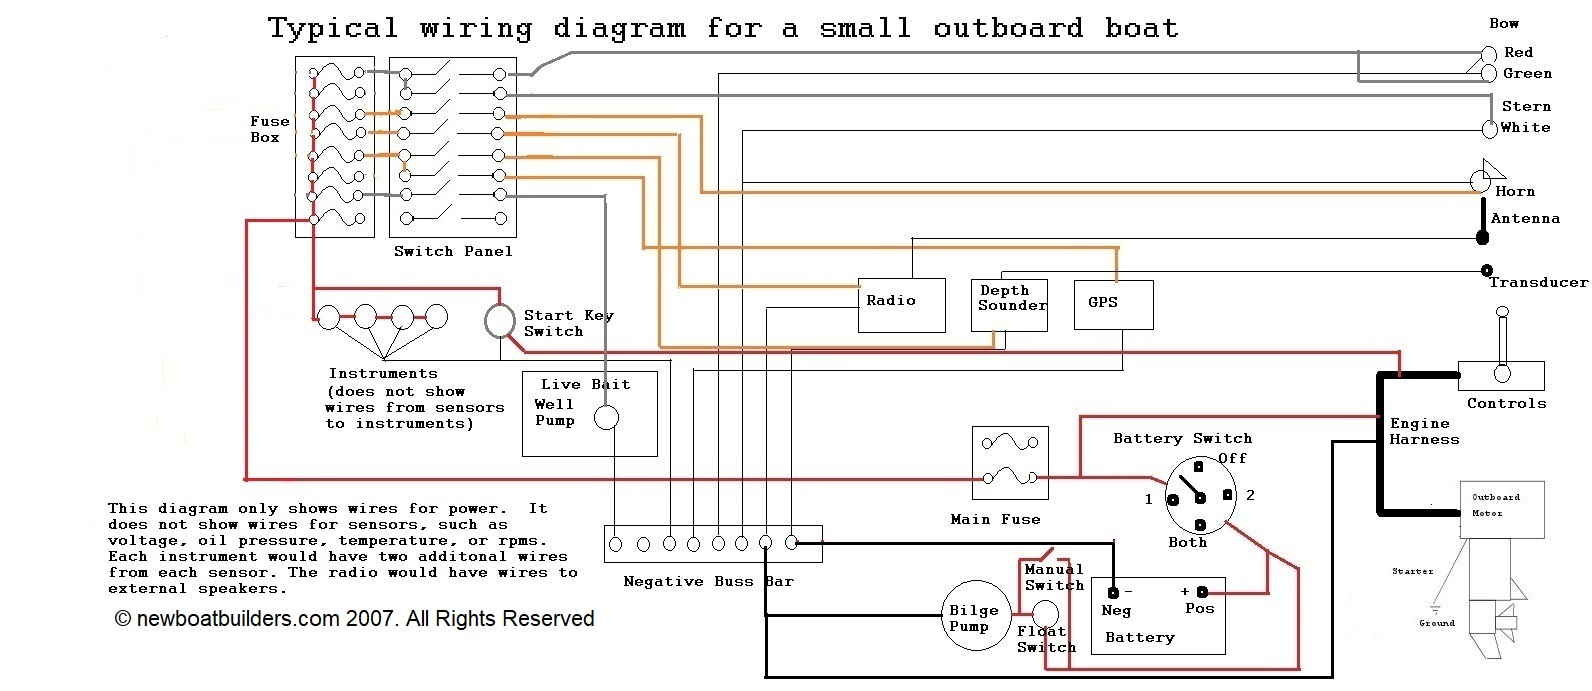 Simple 4 Wire Alternator Wiring Diagram from newboatbuilders.com